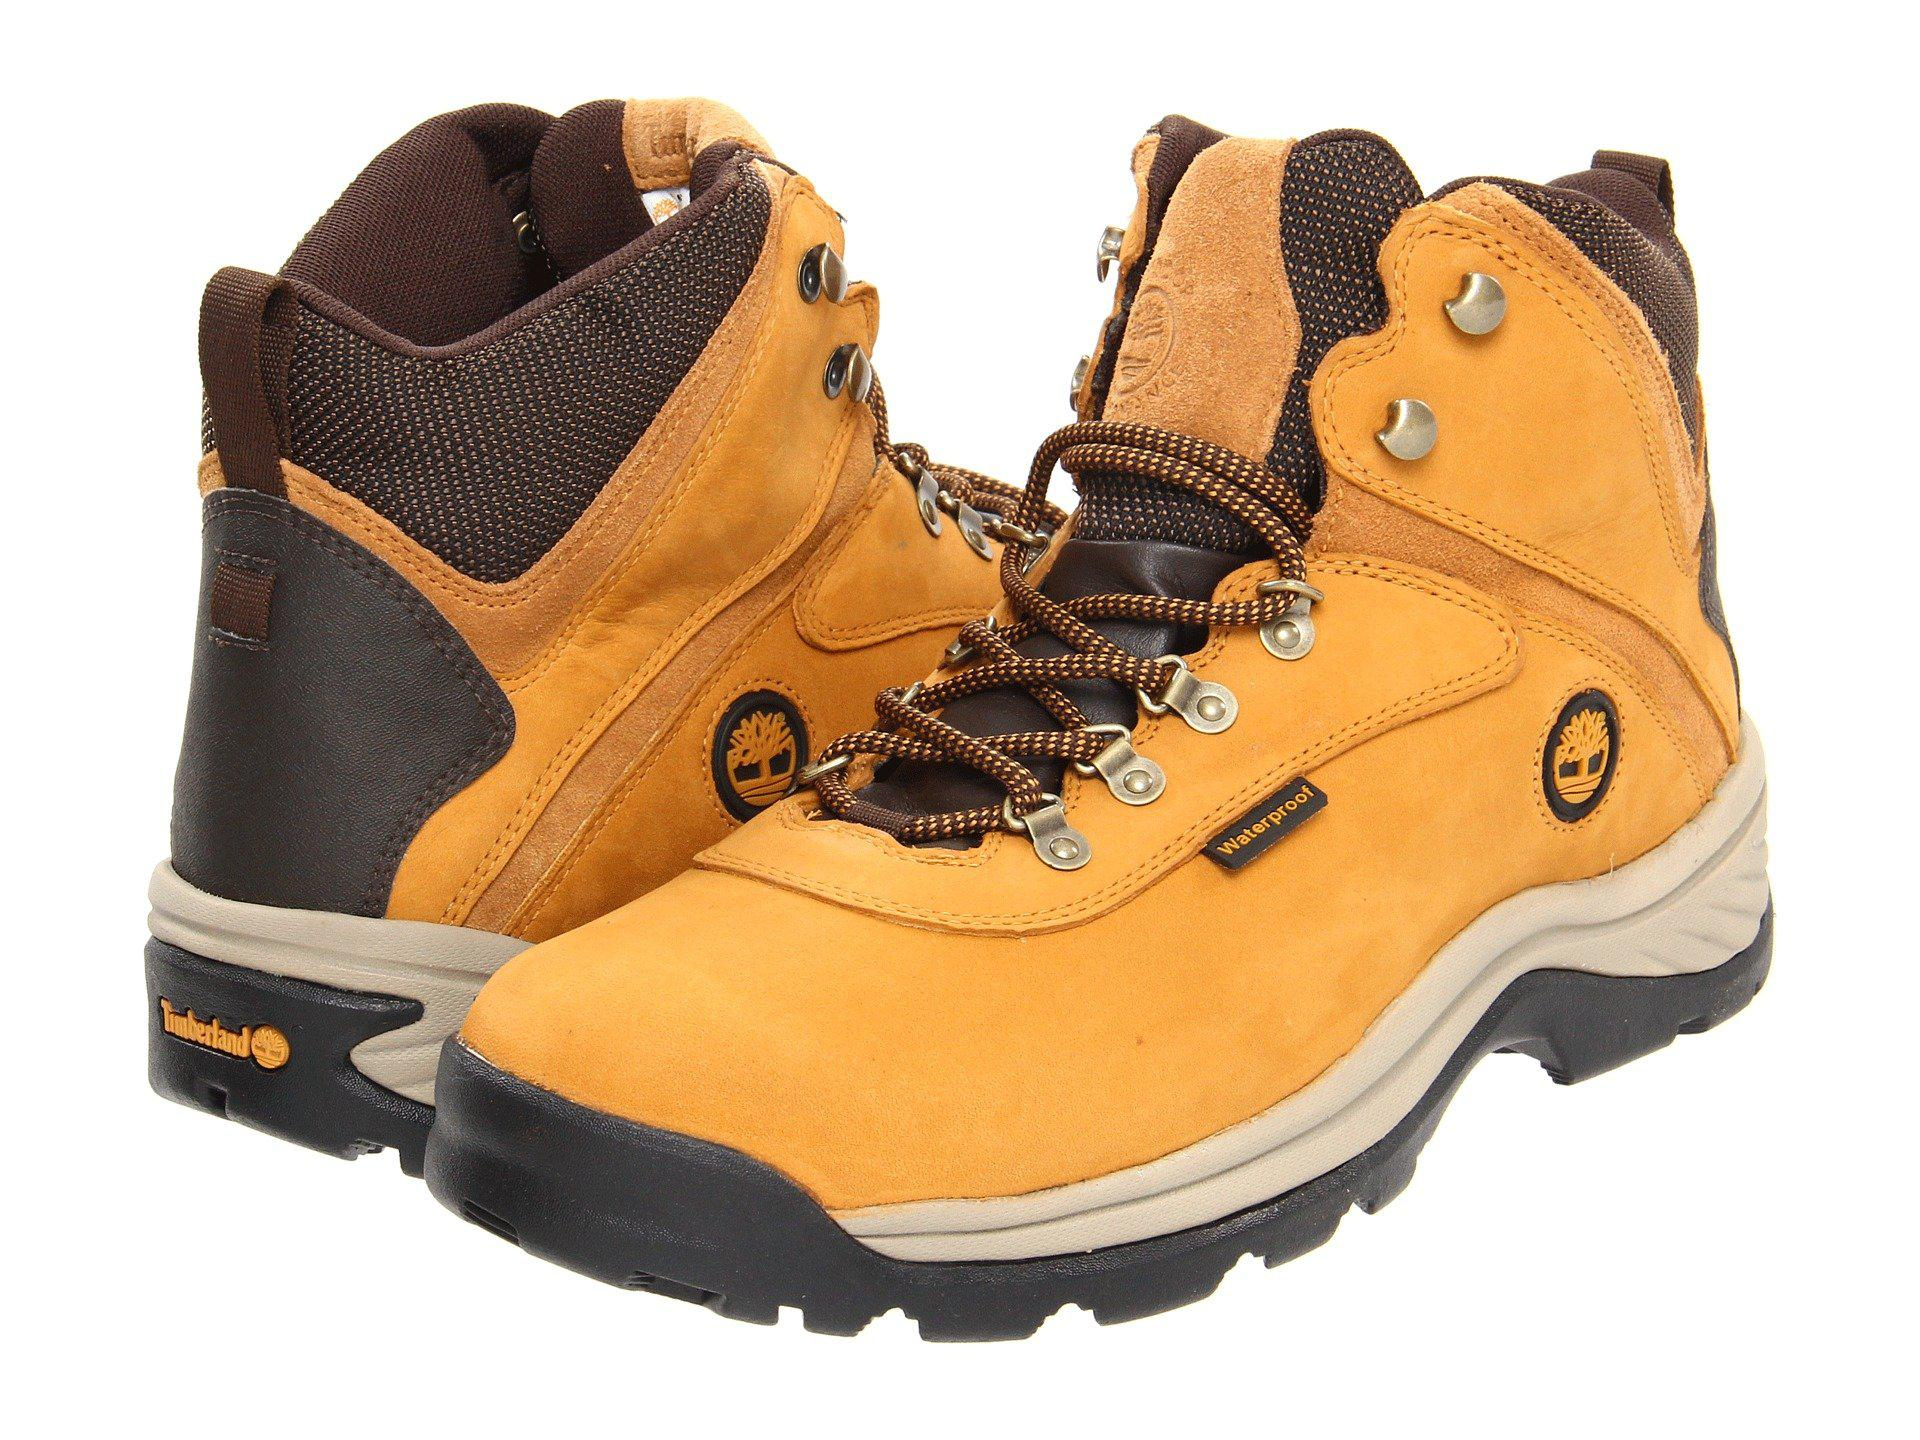 13e4e7aff739 Timberland. Natural White Ledge Mid Waterproof (brown) Men s Hiking Boots